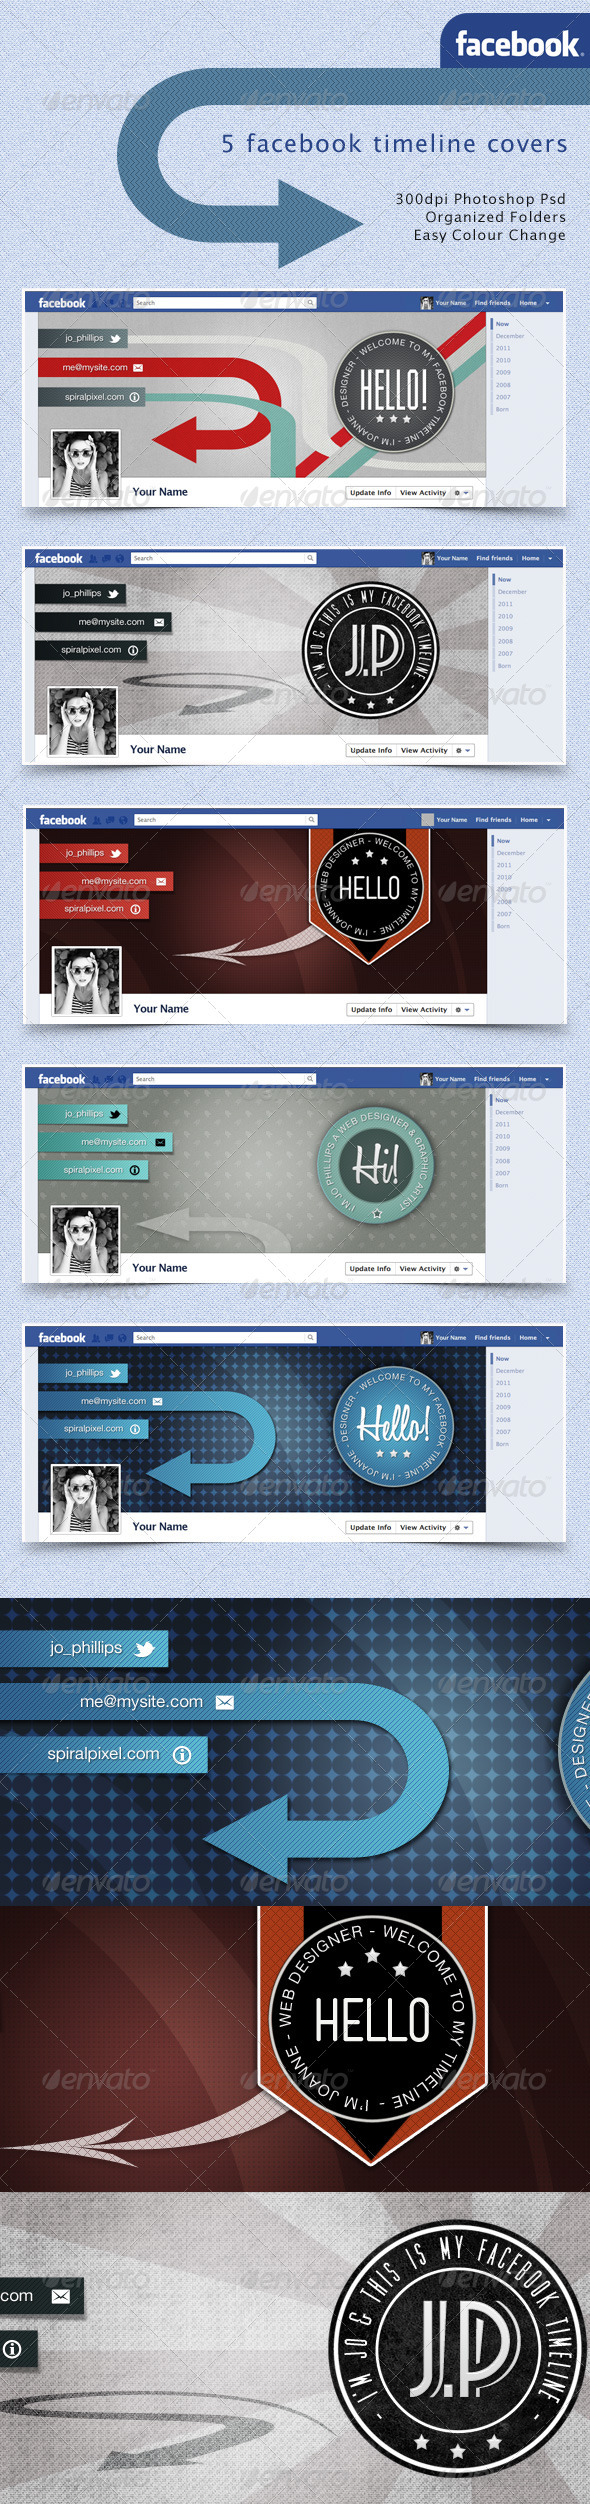 Facebook Timeline Covers - Retro Badges - Facebook Timeline Covers Social Media